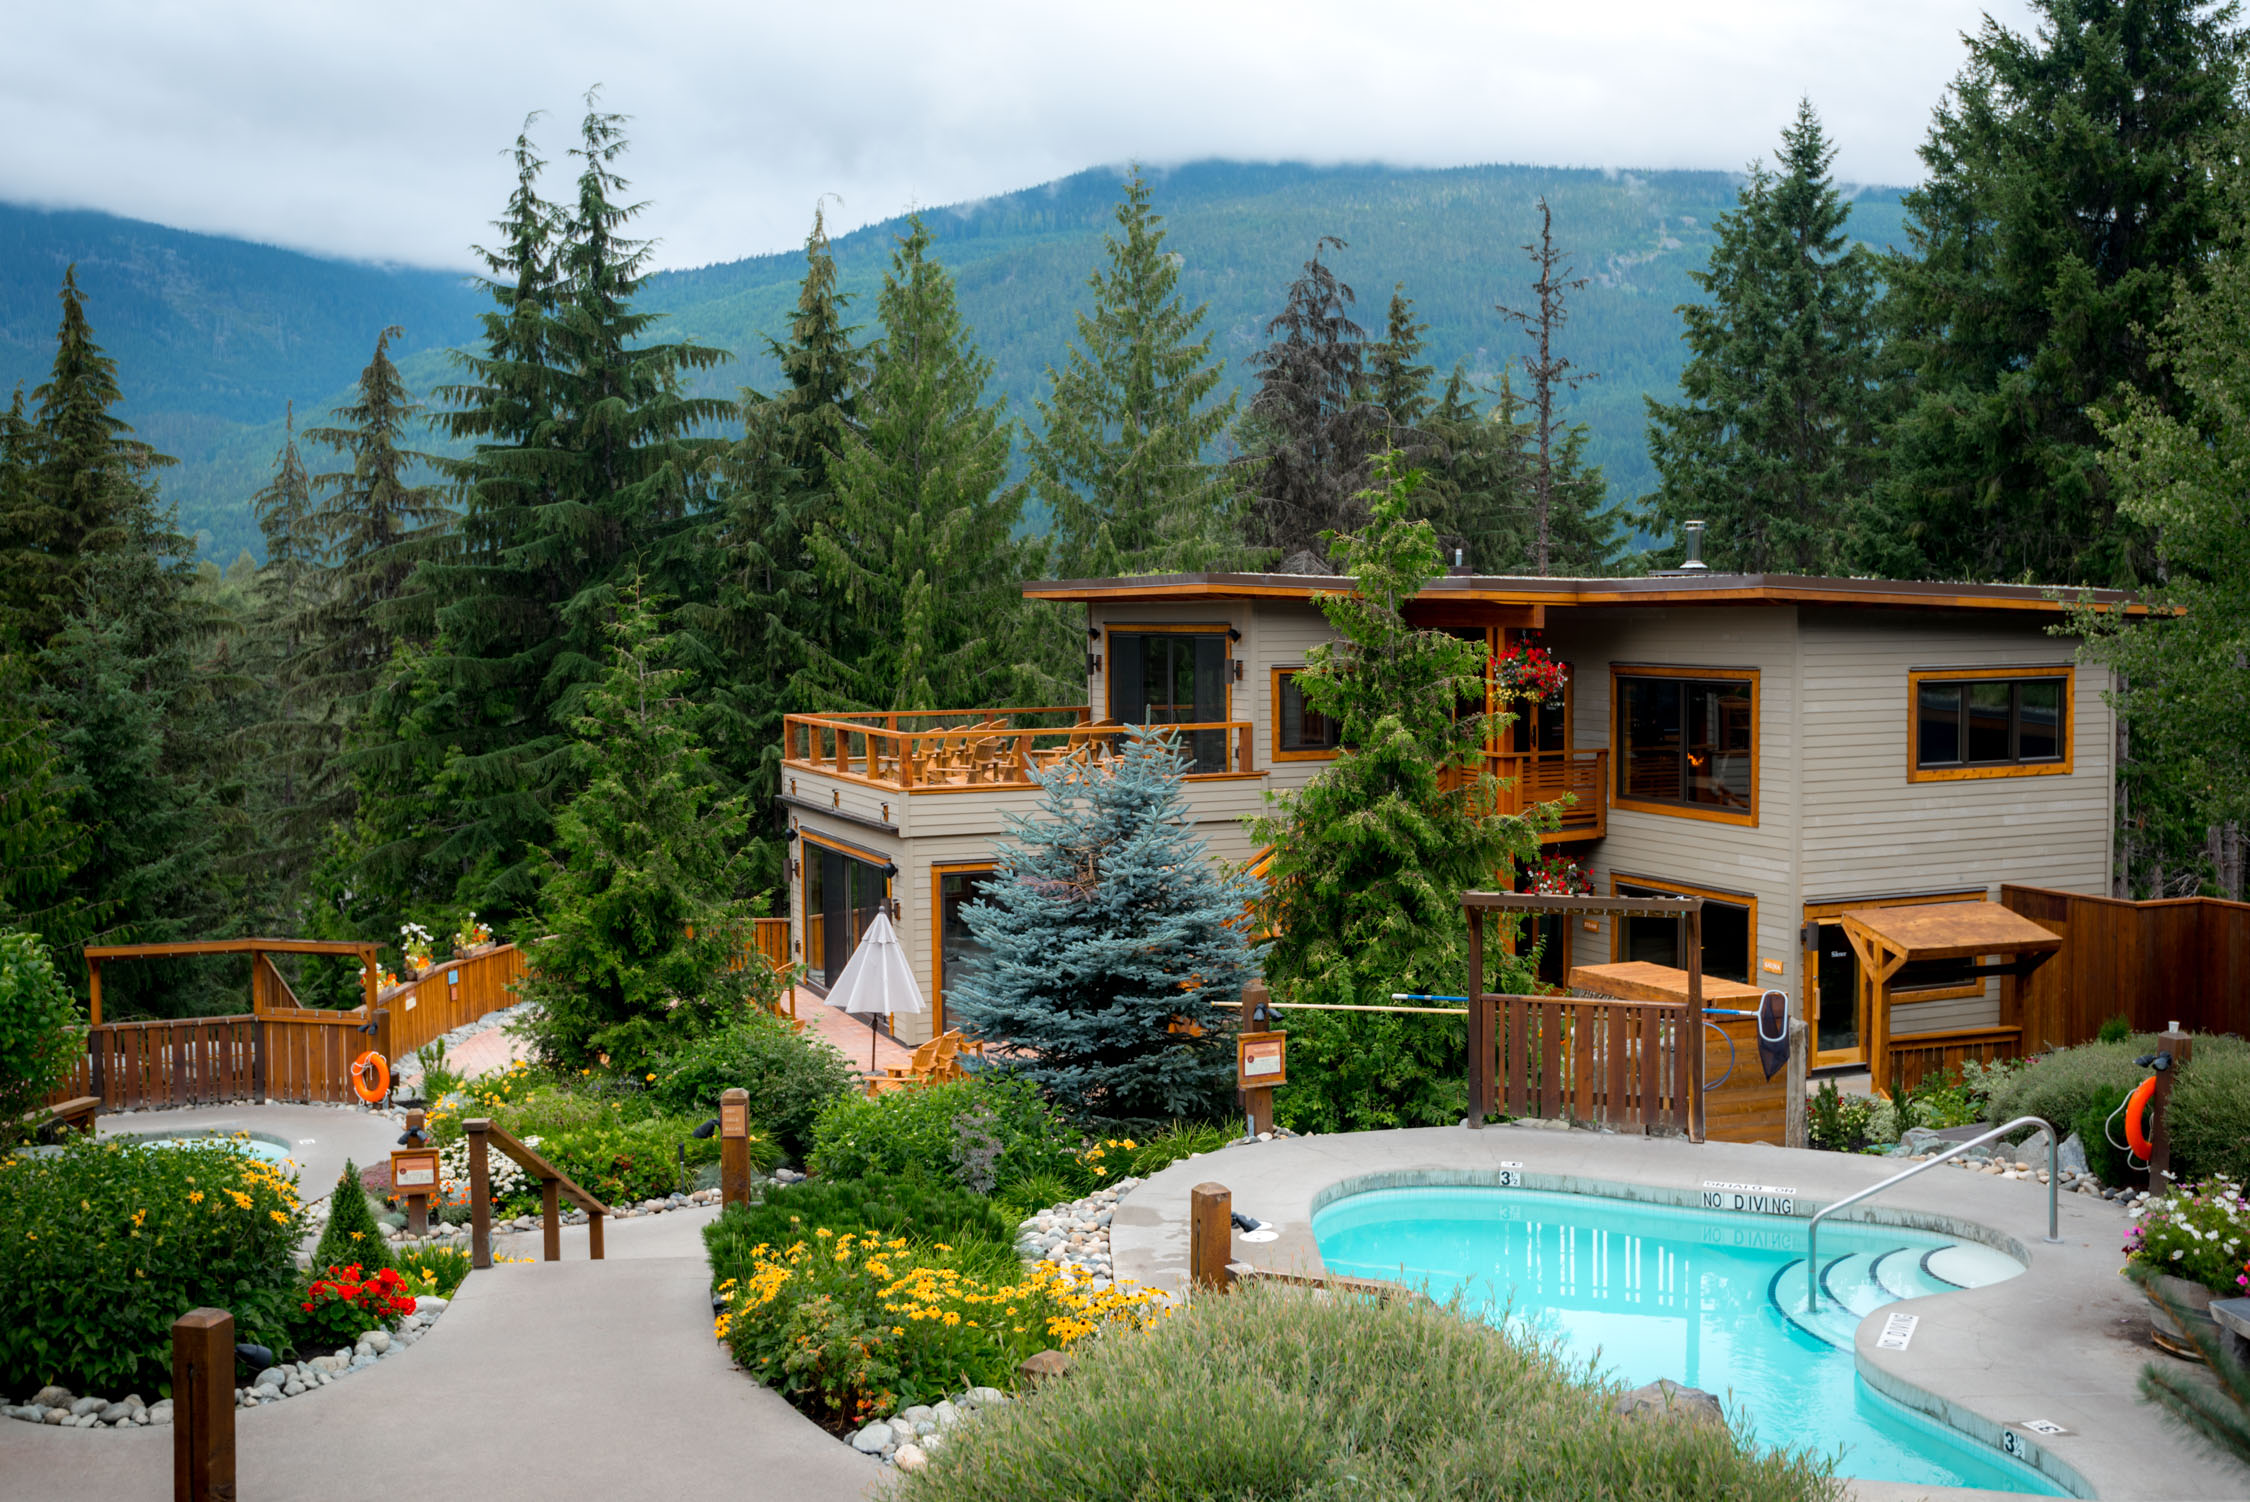 Looking over Scandinave Spa in Whister, Canada